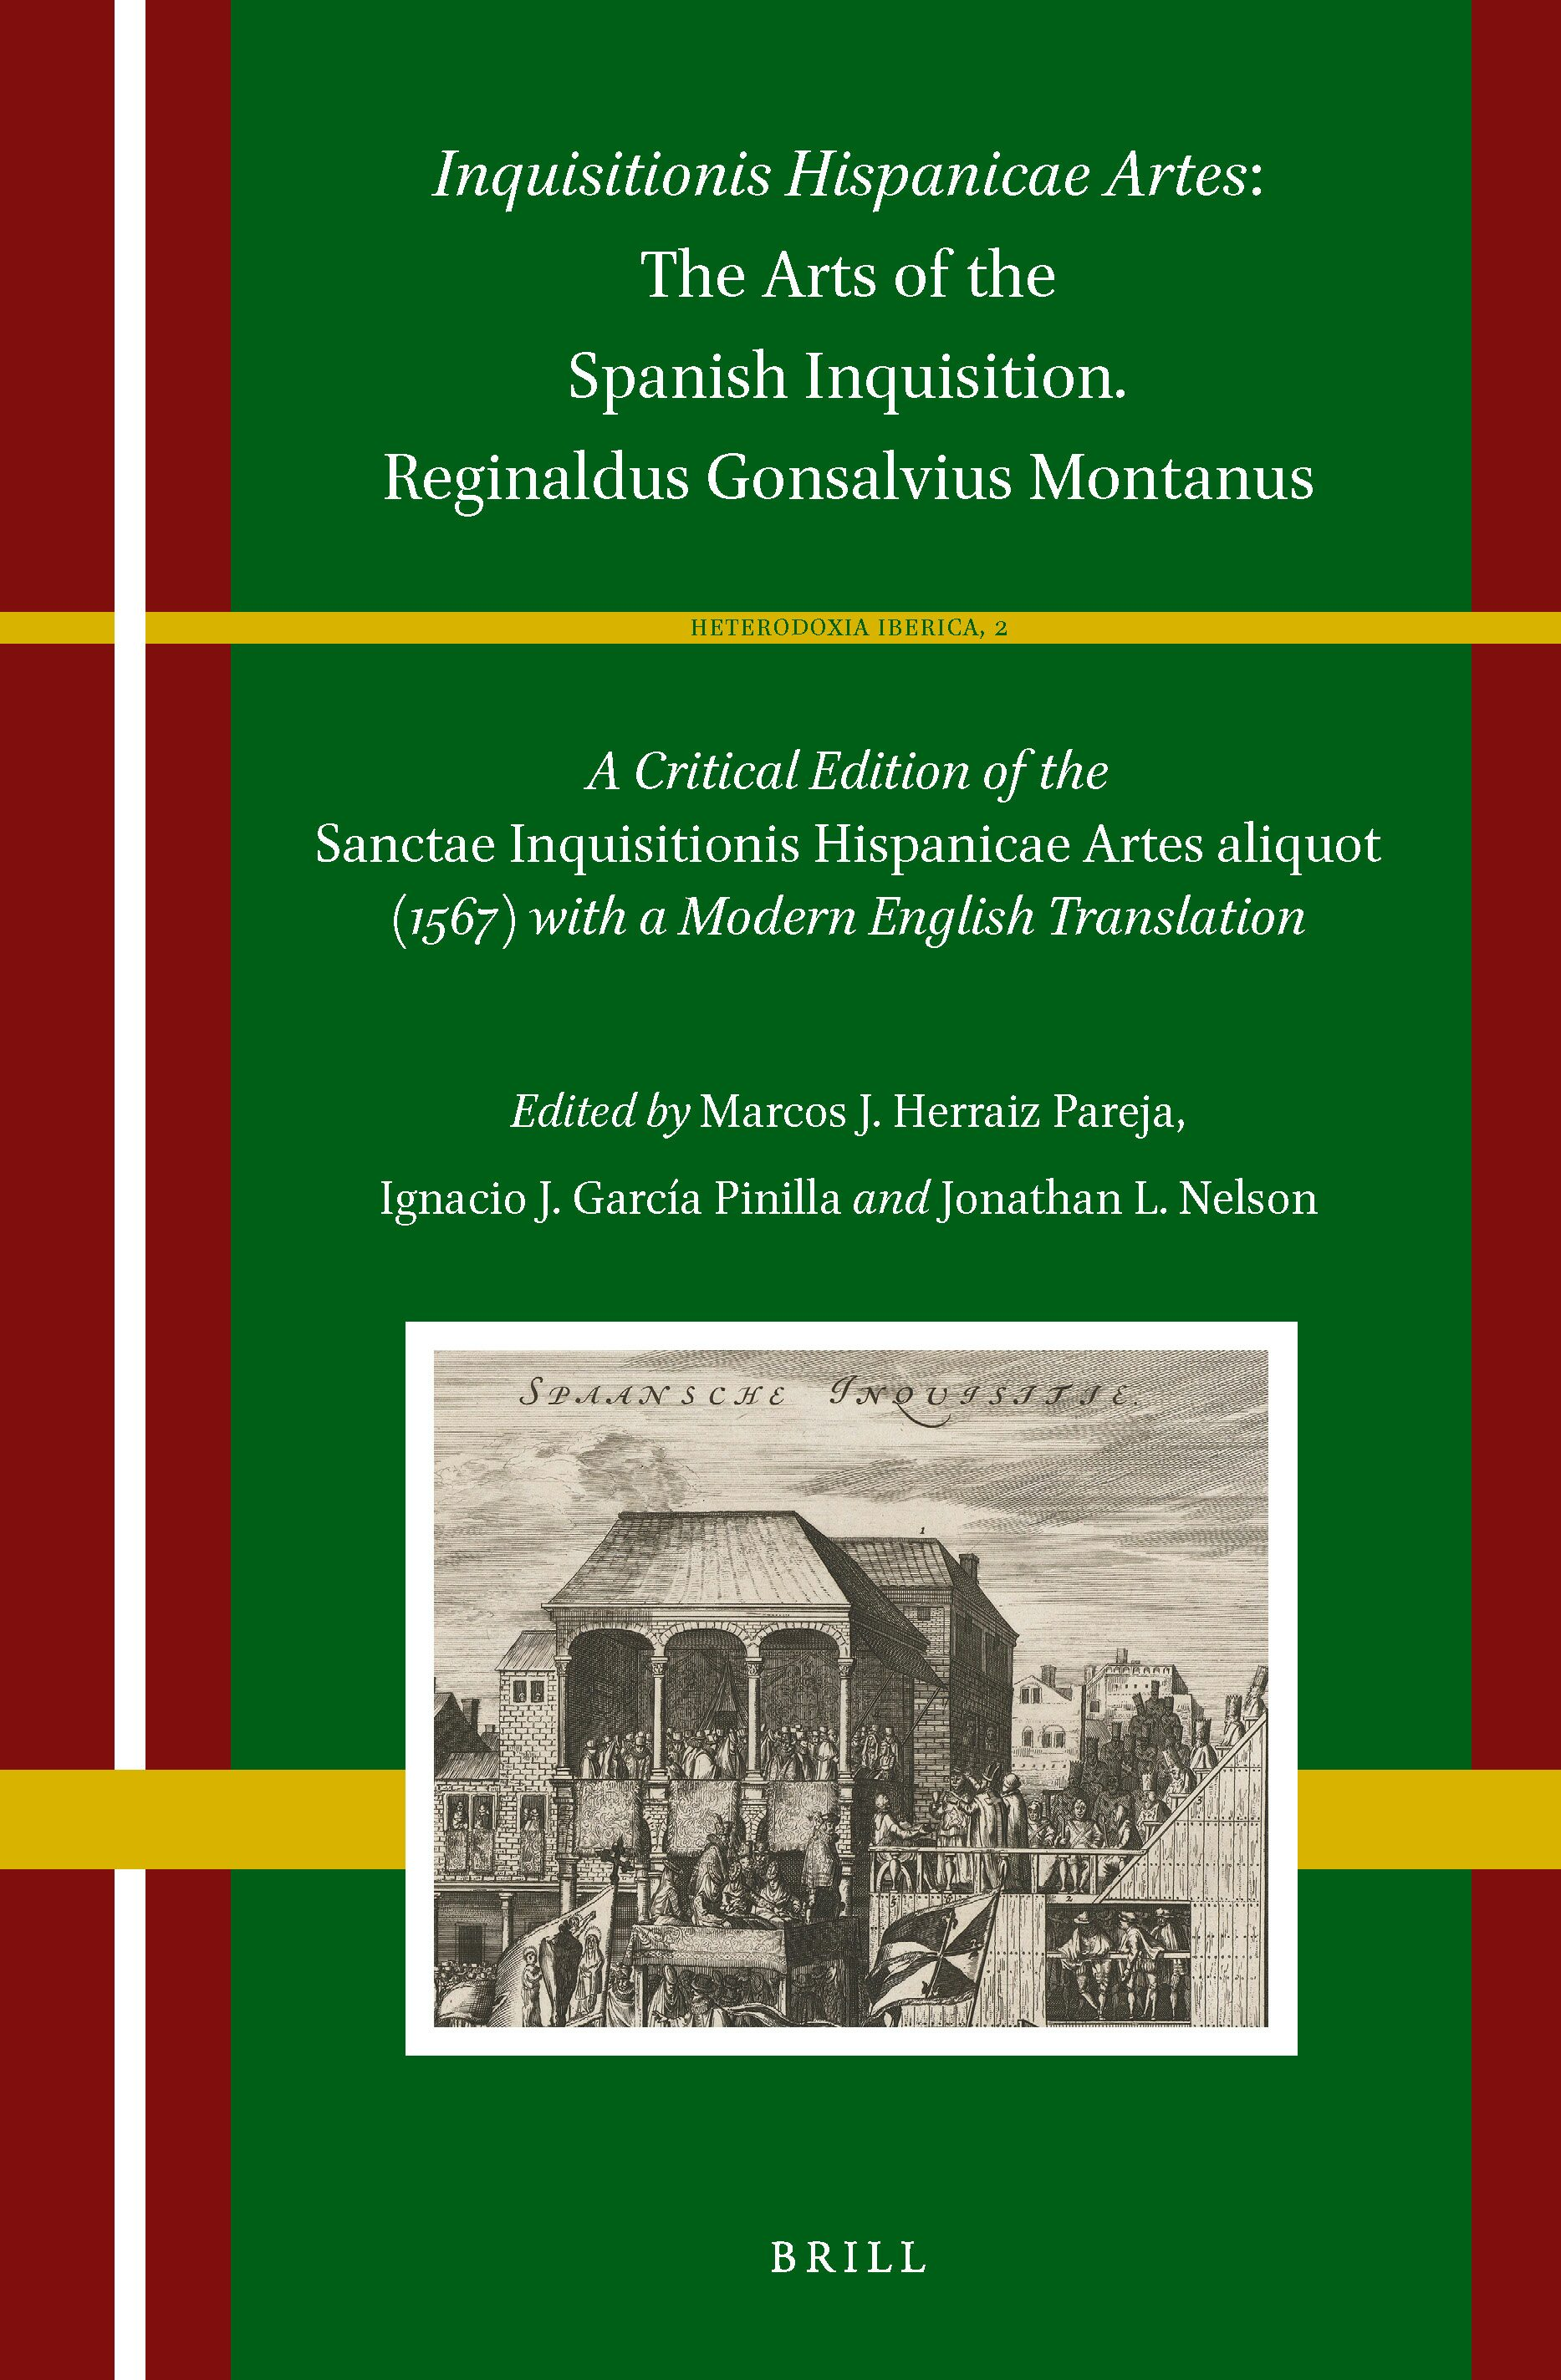 Part 1. Certain Devices Of The Holy Inquisition Of Spain Uncovered And  Openly Displayed In: Inquisitionis Hispanicae Artes: The Arts Of The  Spanish Inquisition. Reginaldus Gonsalvius Montanus